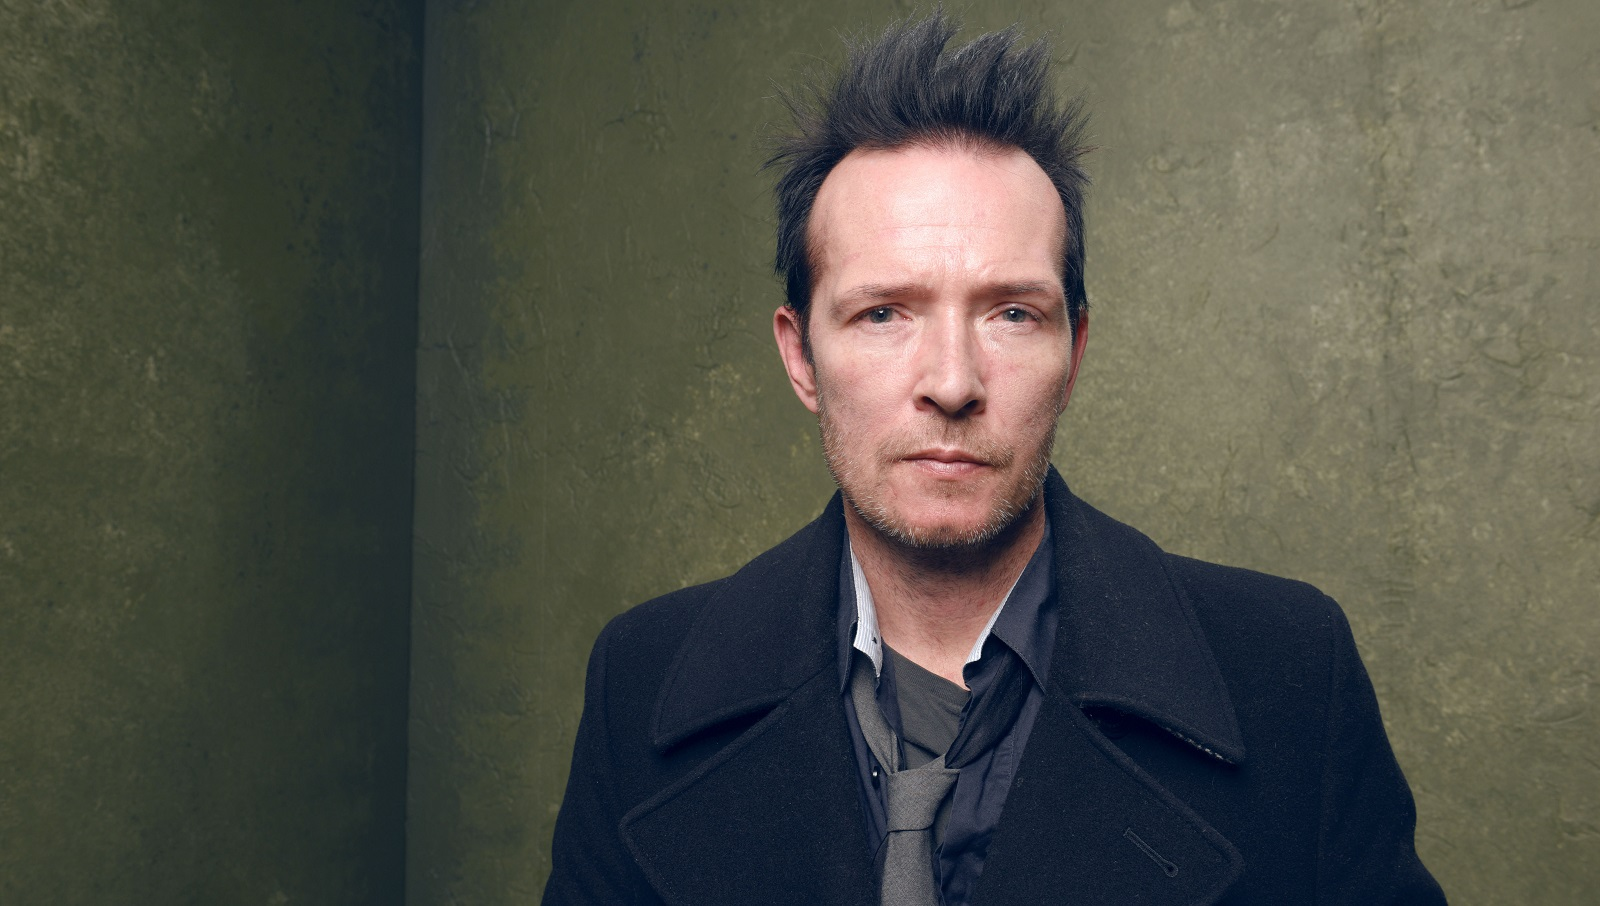 The News' Jeff Miers pens a letter to the late Scott Weiland, former member of the Stone Temple Pilots and Velvet Revolver. (Larry Busacca/Getty Images)